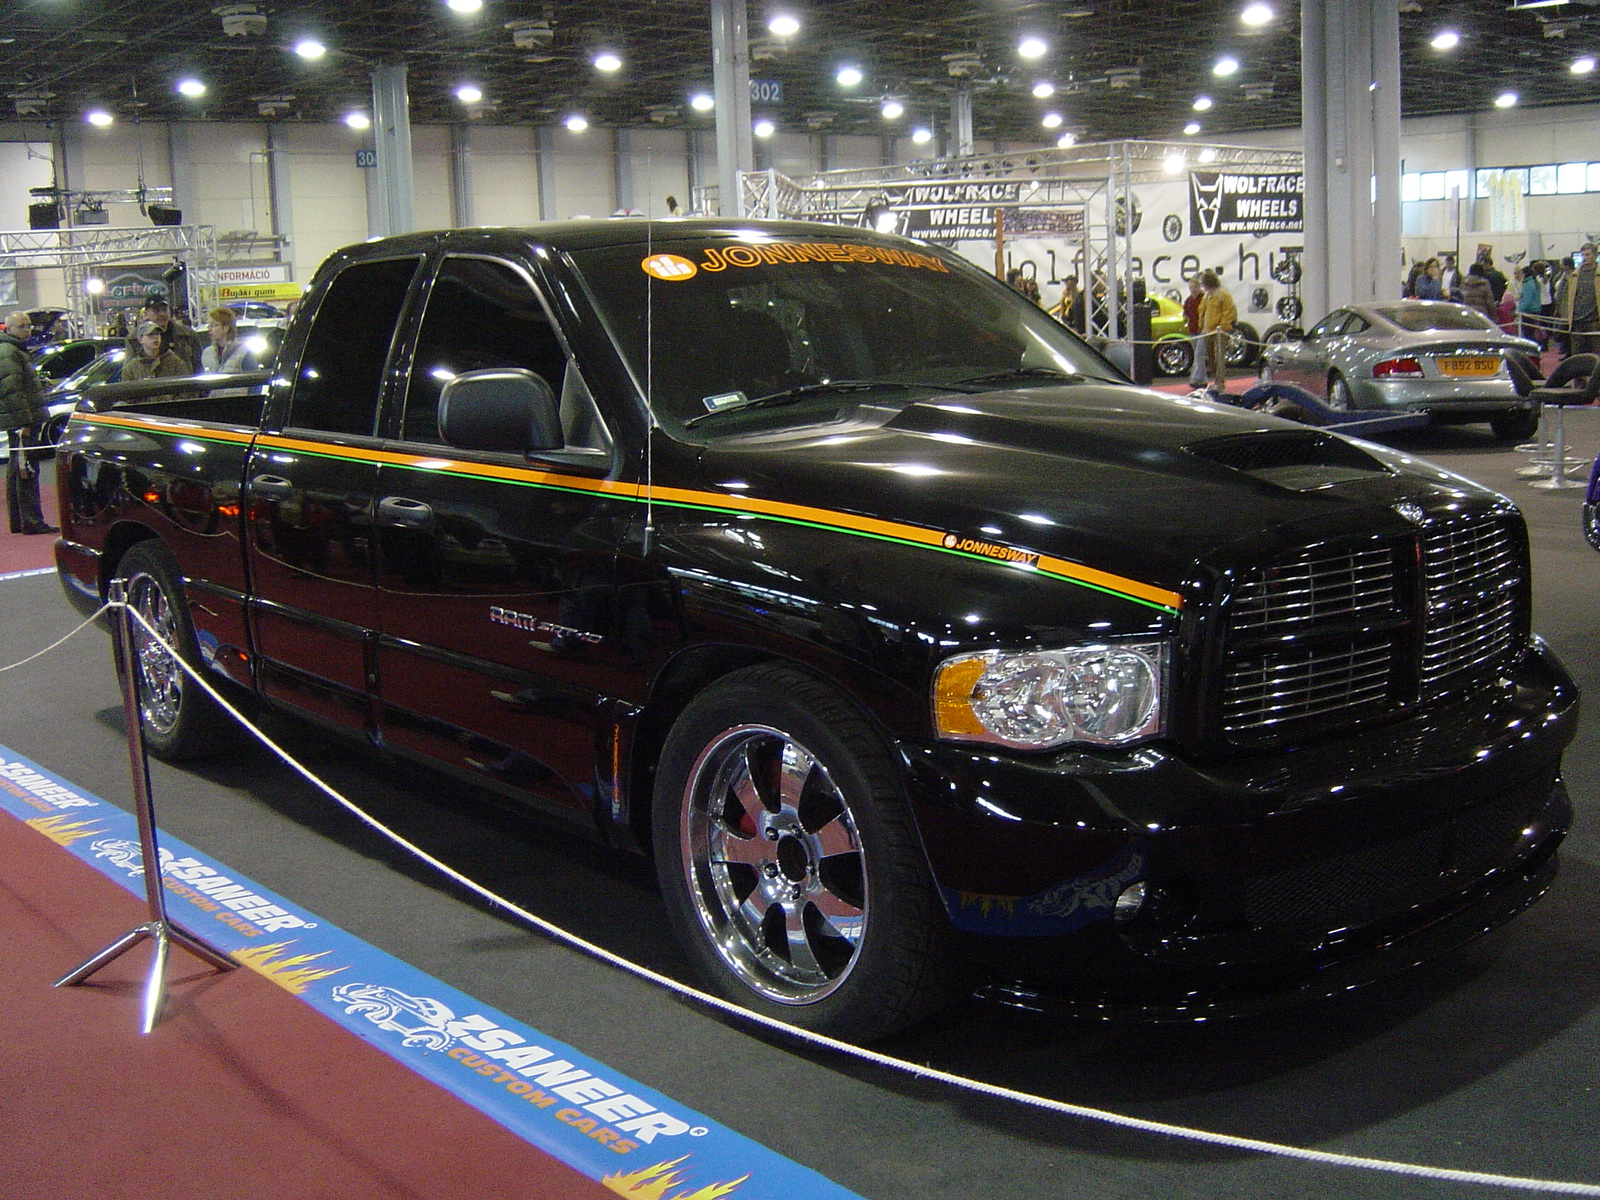 Ram Srt 10 >> File:Tuning Show 2008 - 024 - Dodge RAM SRT-10 (side-view).jpg - Wikimedia Commons